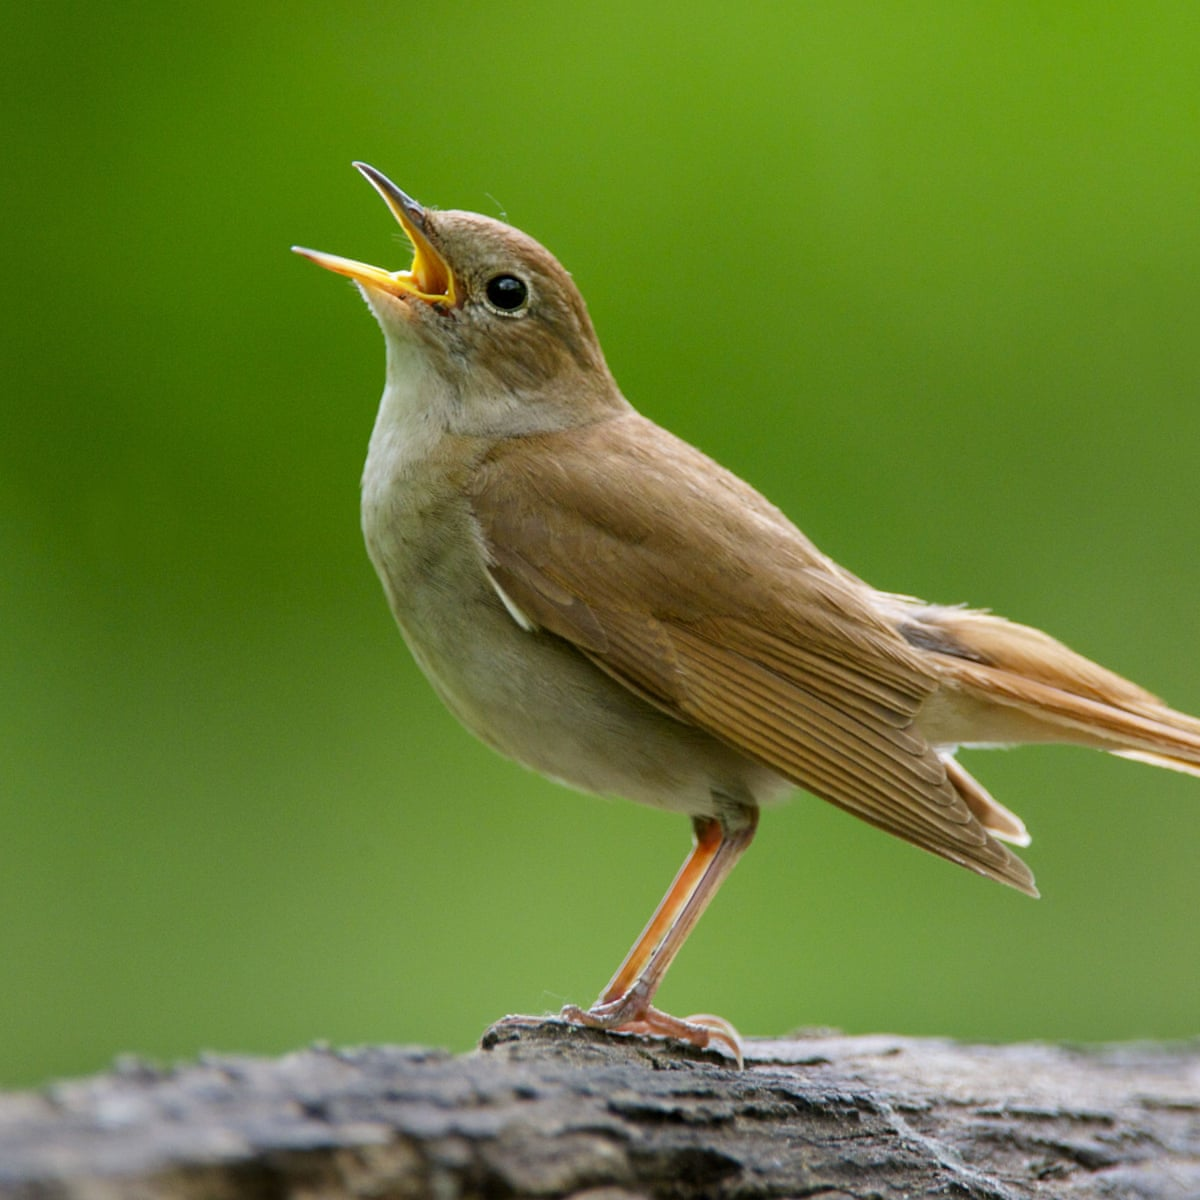 Nightingales at risk due to shorter wings caused by climate crisis ...